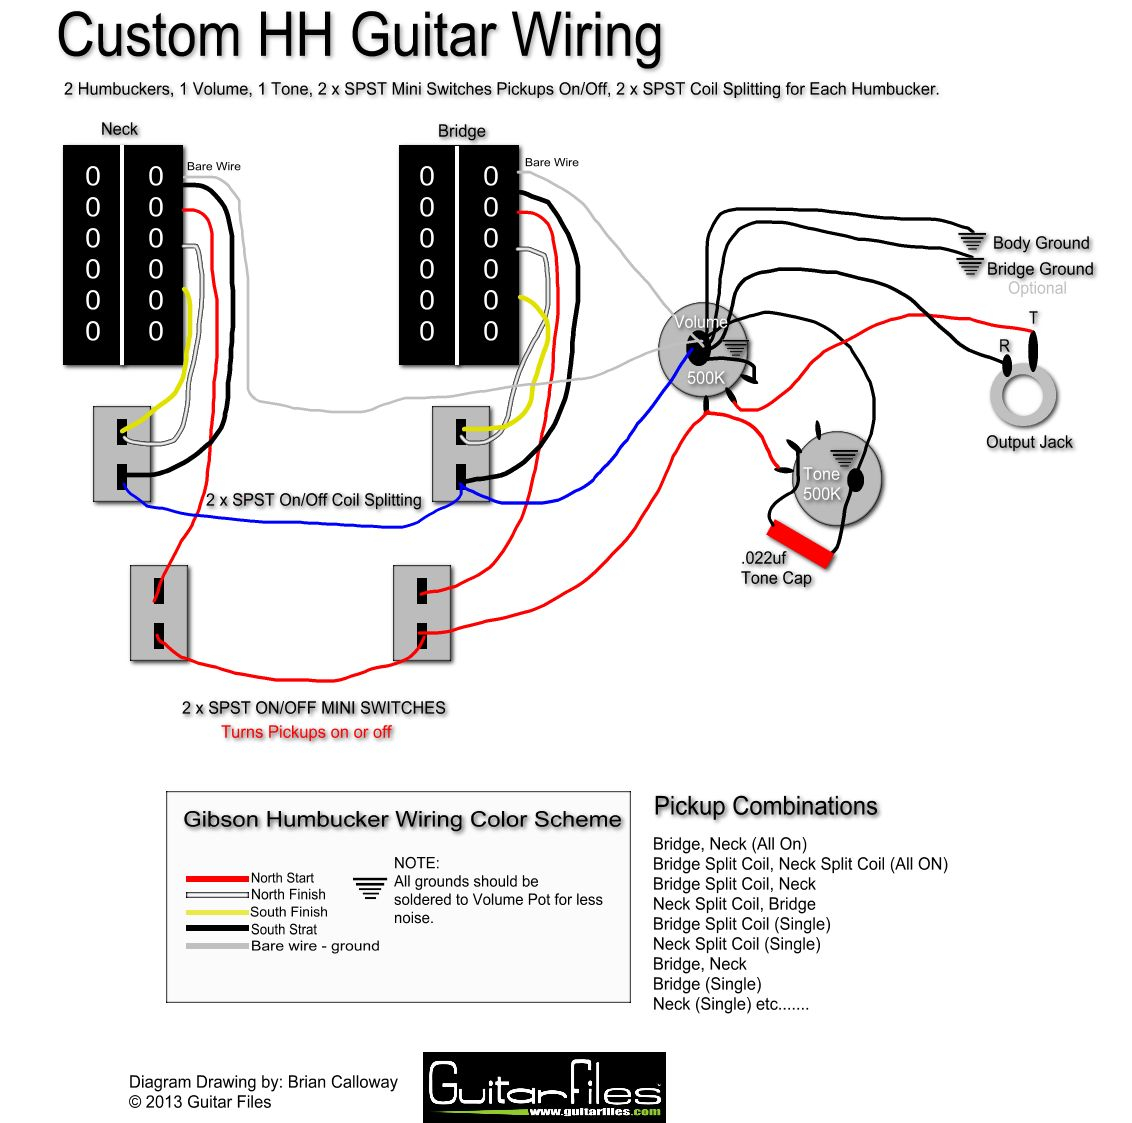 epiphone les paul custom pro wiring diagram les paul coil tap wiring diagram collection les paul split coil wiring diagram #5